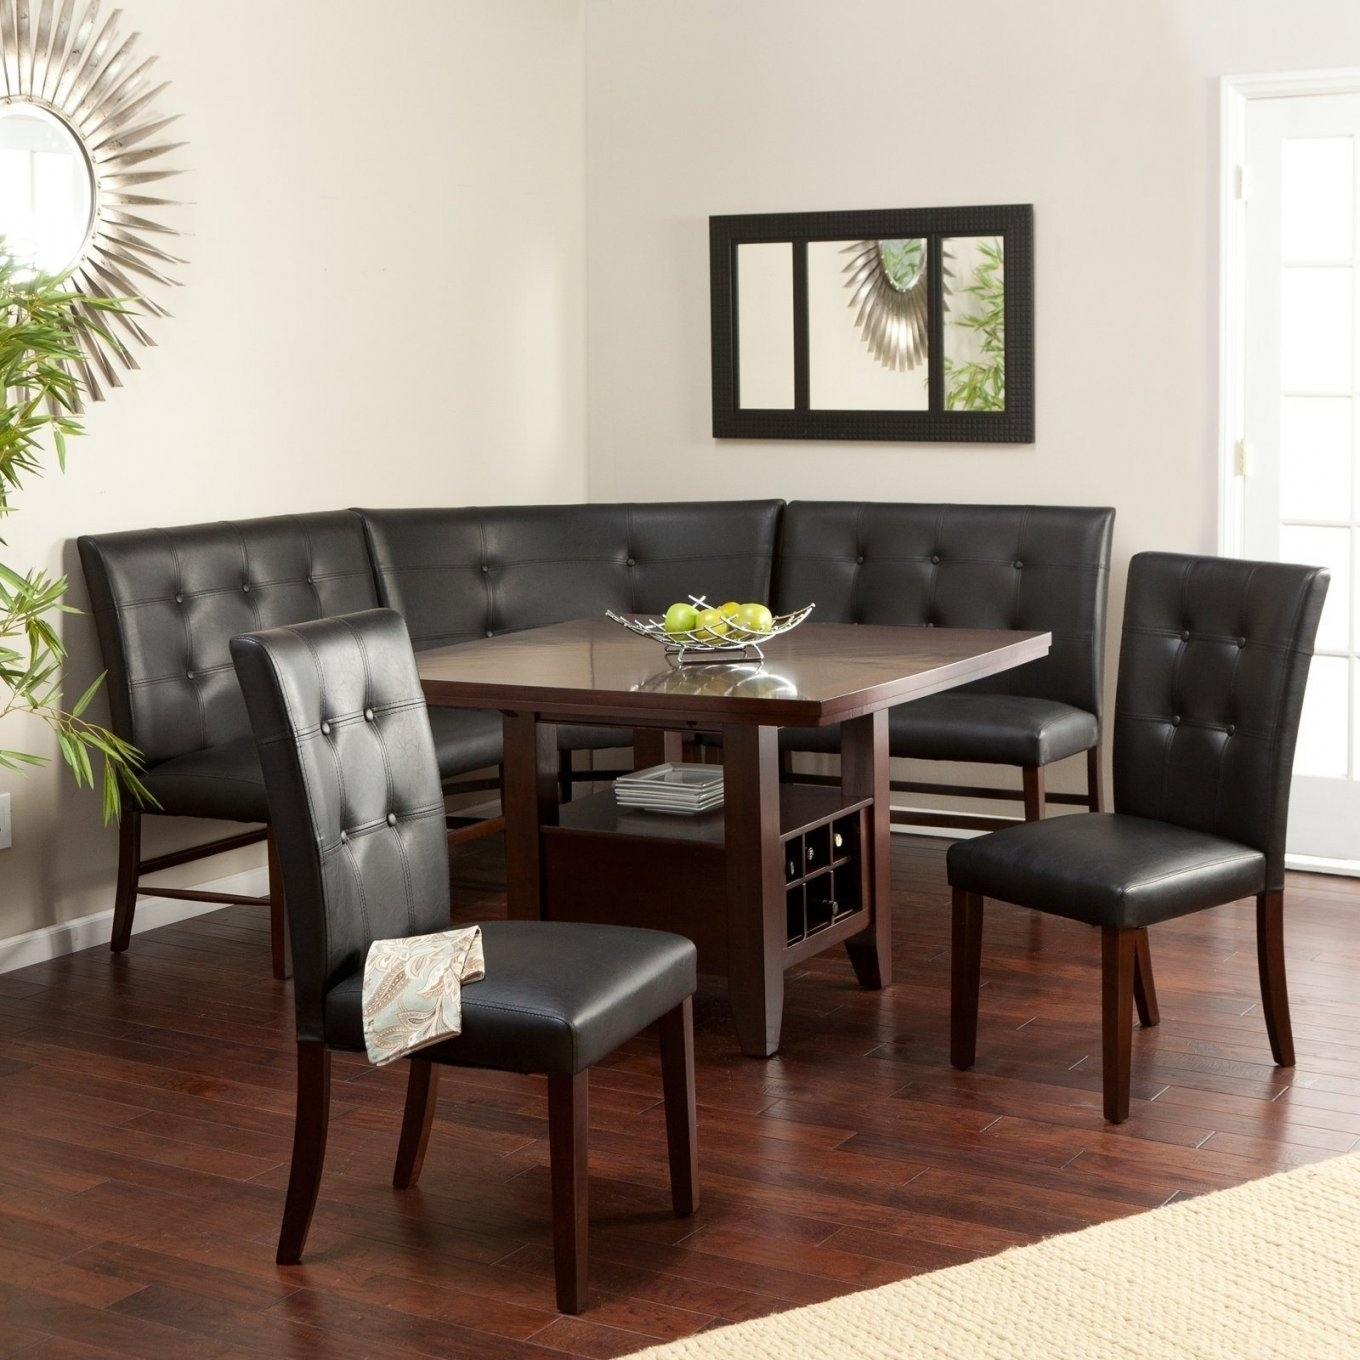 6 Person Round Dining Table Popular Tables Awesome And With Regard With Latest Round 6 Person Dining Tables (Gallery 7 of 25)